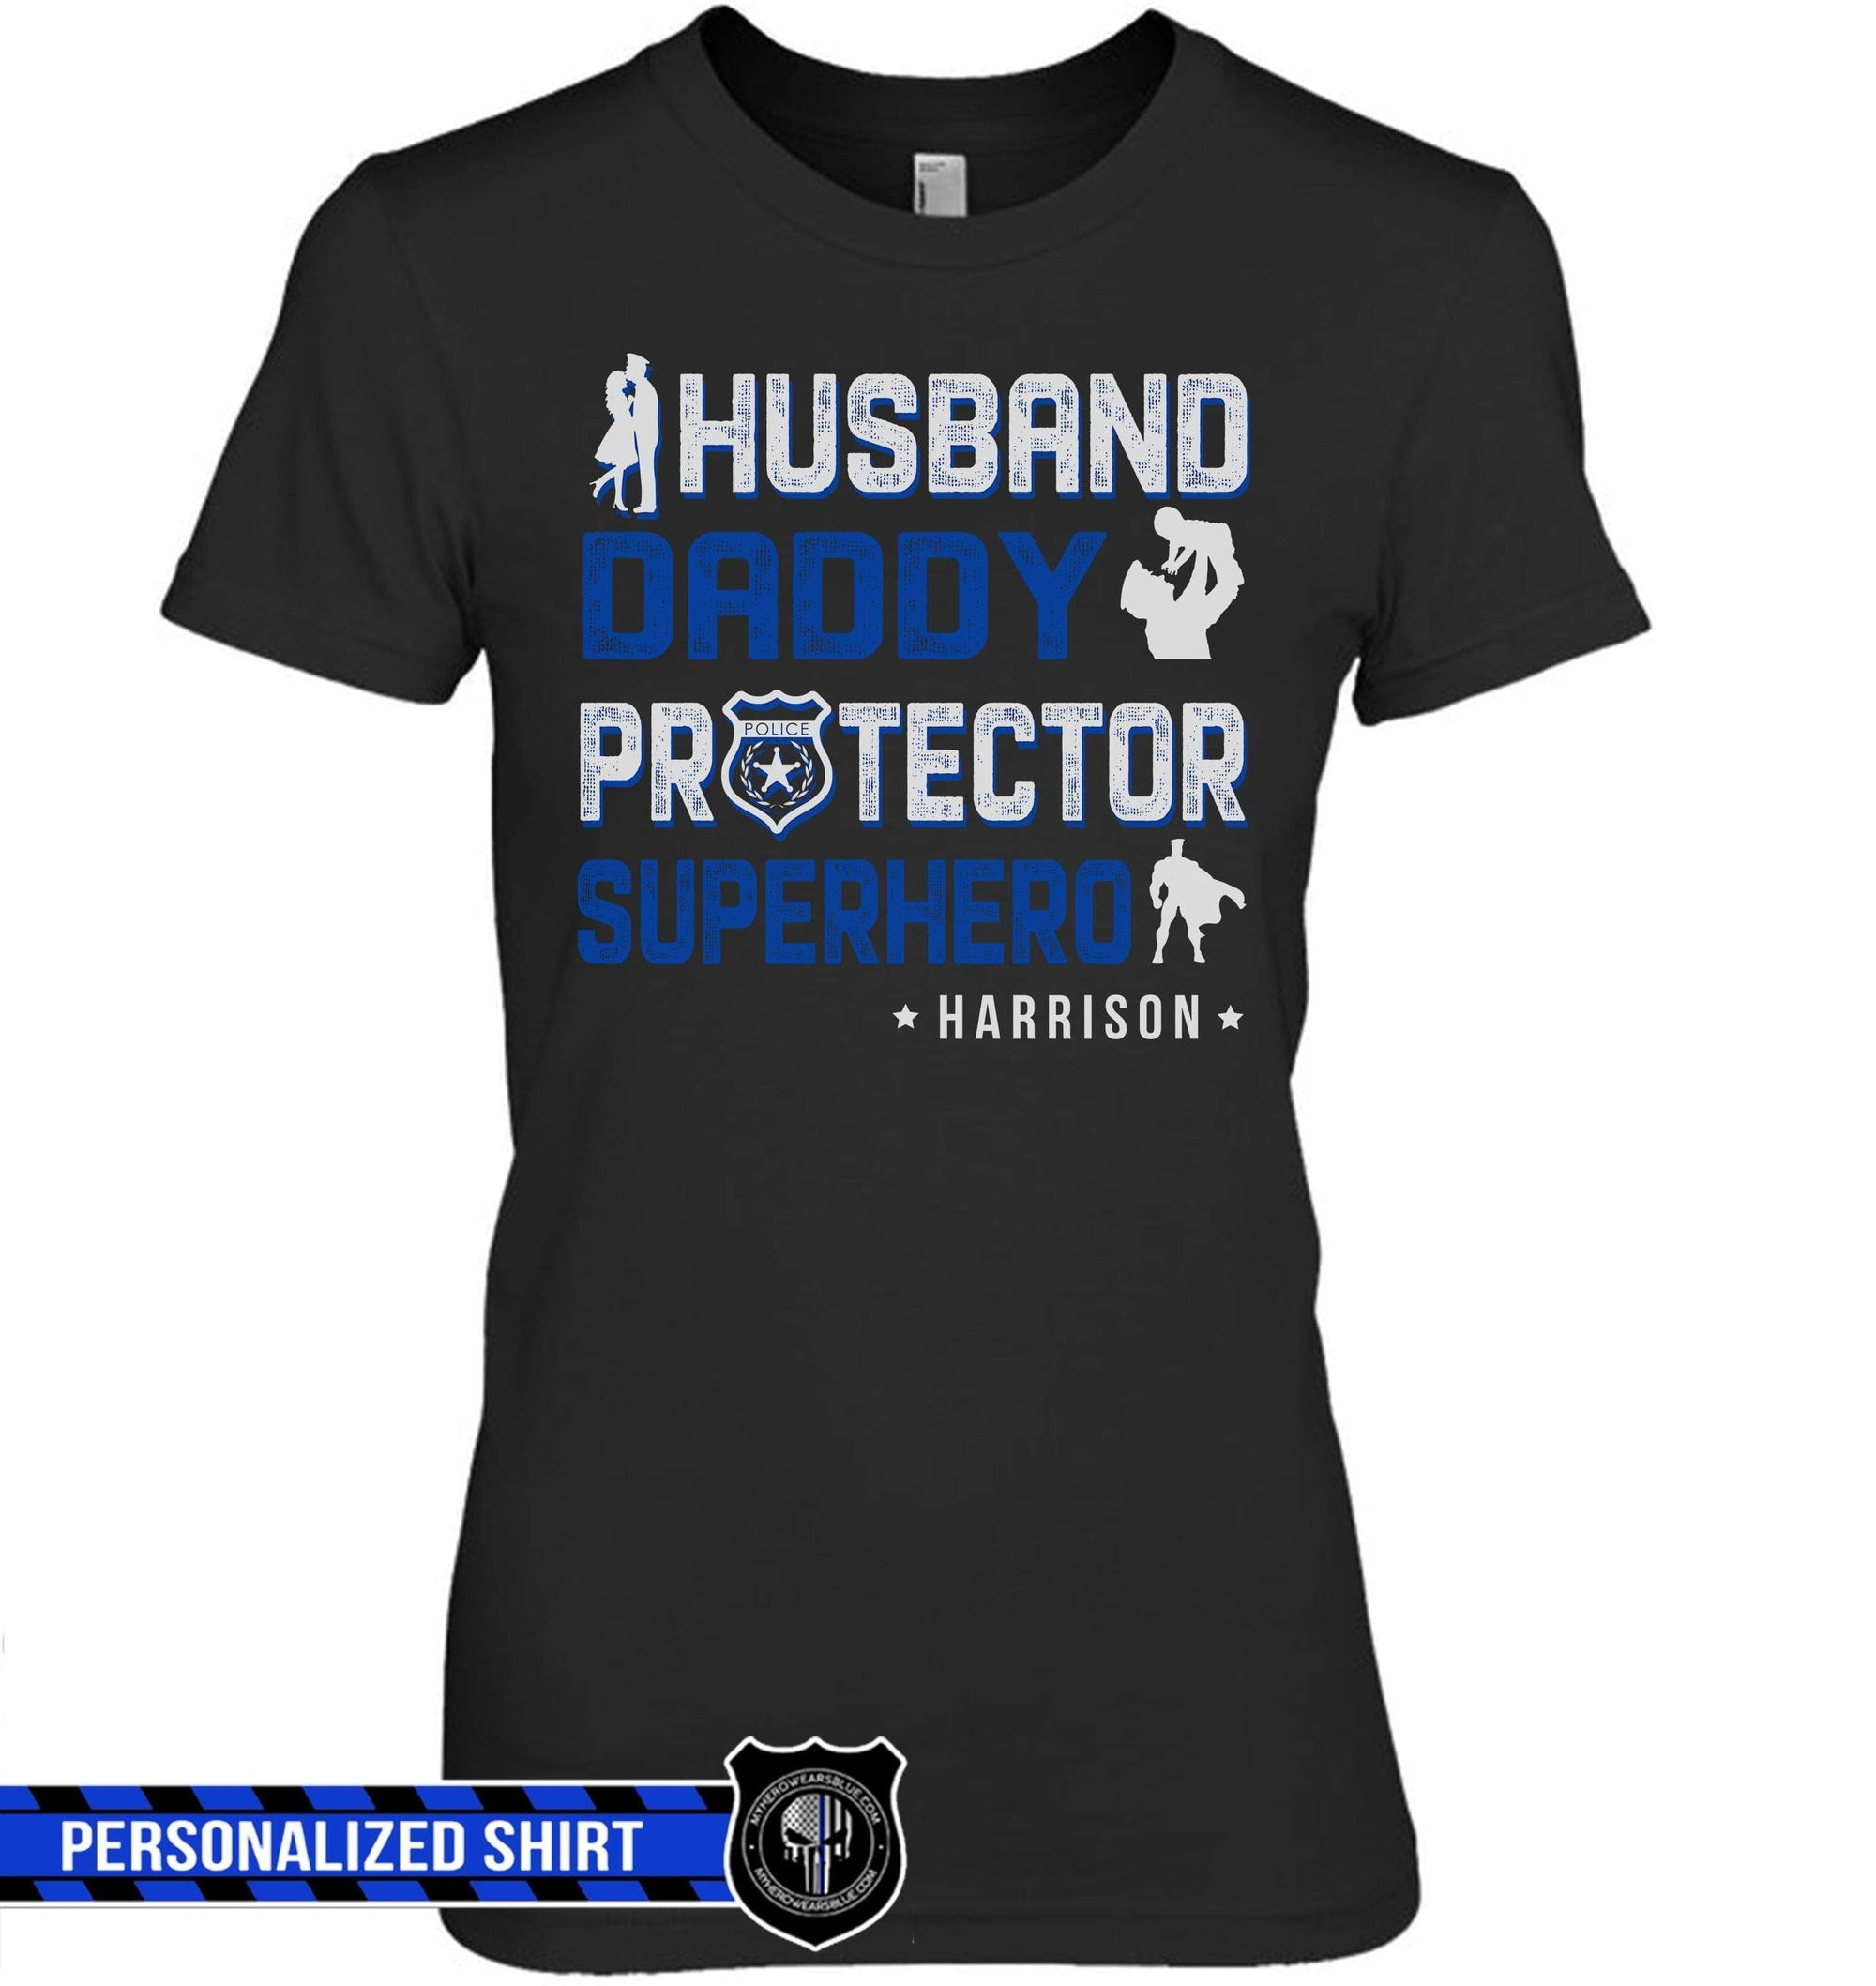 dc02ad84 T-shirts Basic Women's Tee / XS / Black Personalized Shirt - Husband Daddy  Protector